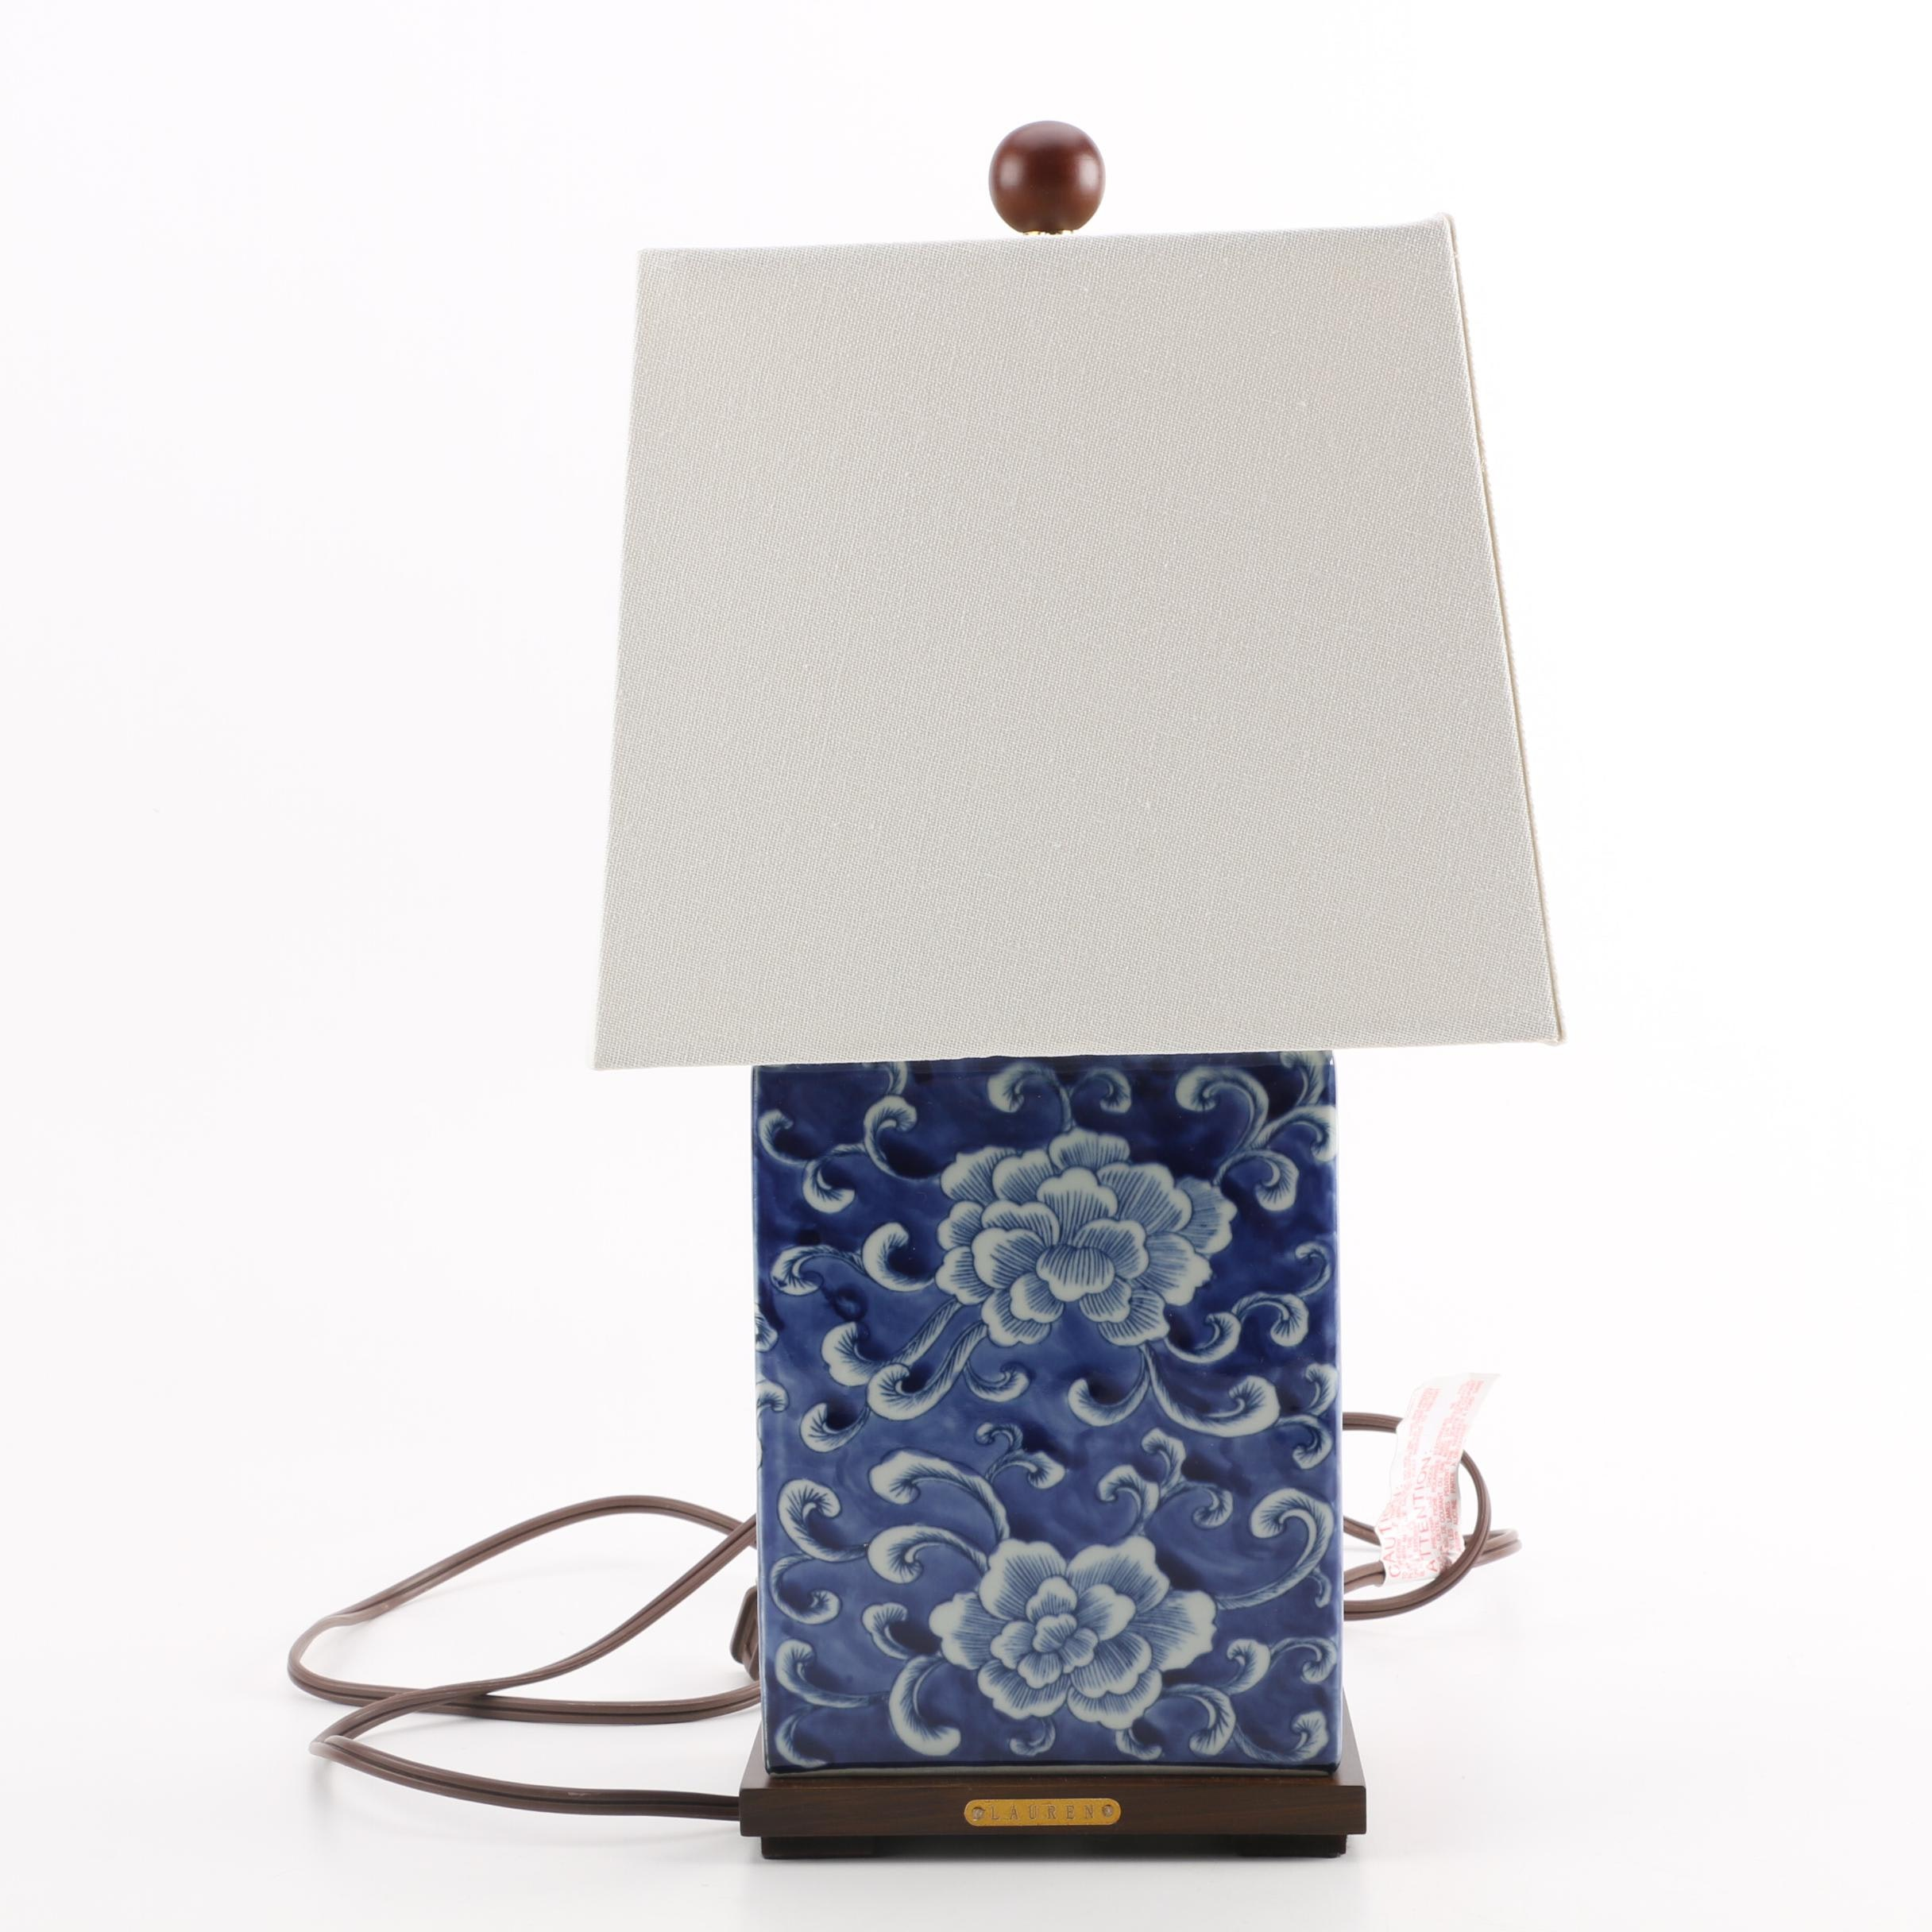 Chinese Blue and White Ceramic Accent Light